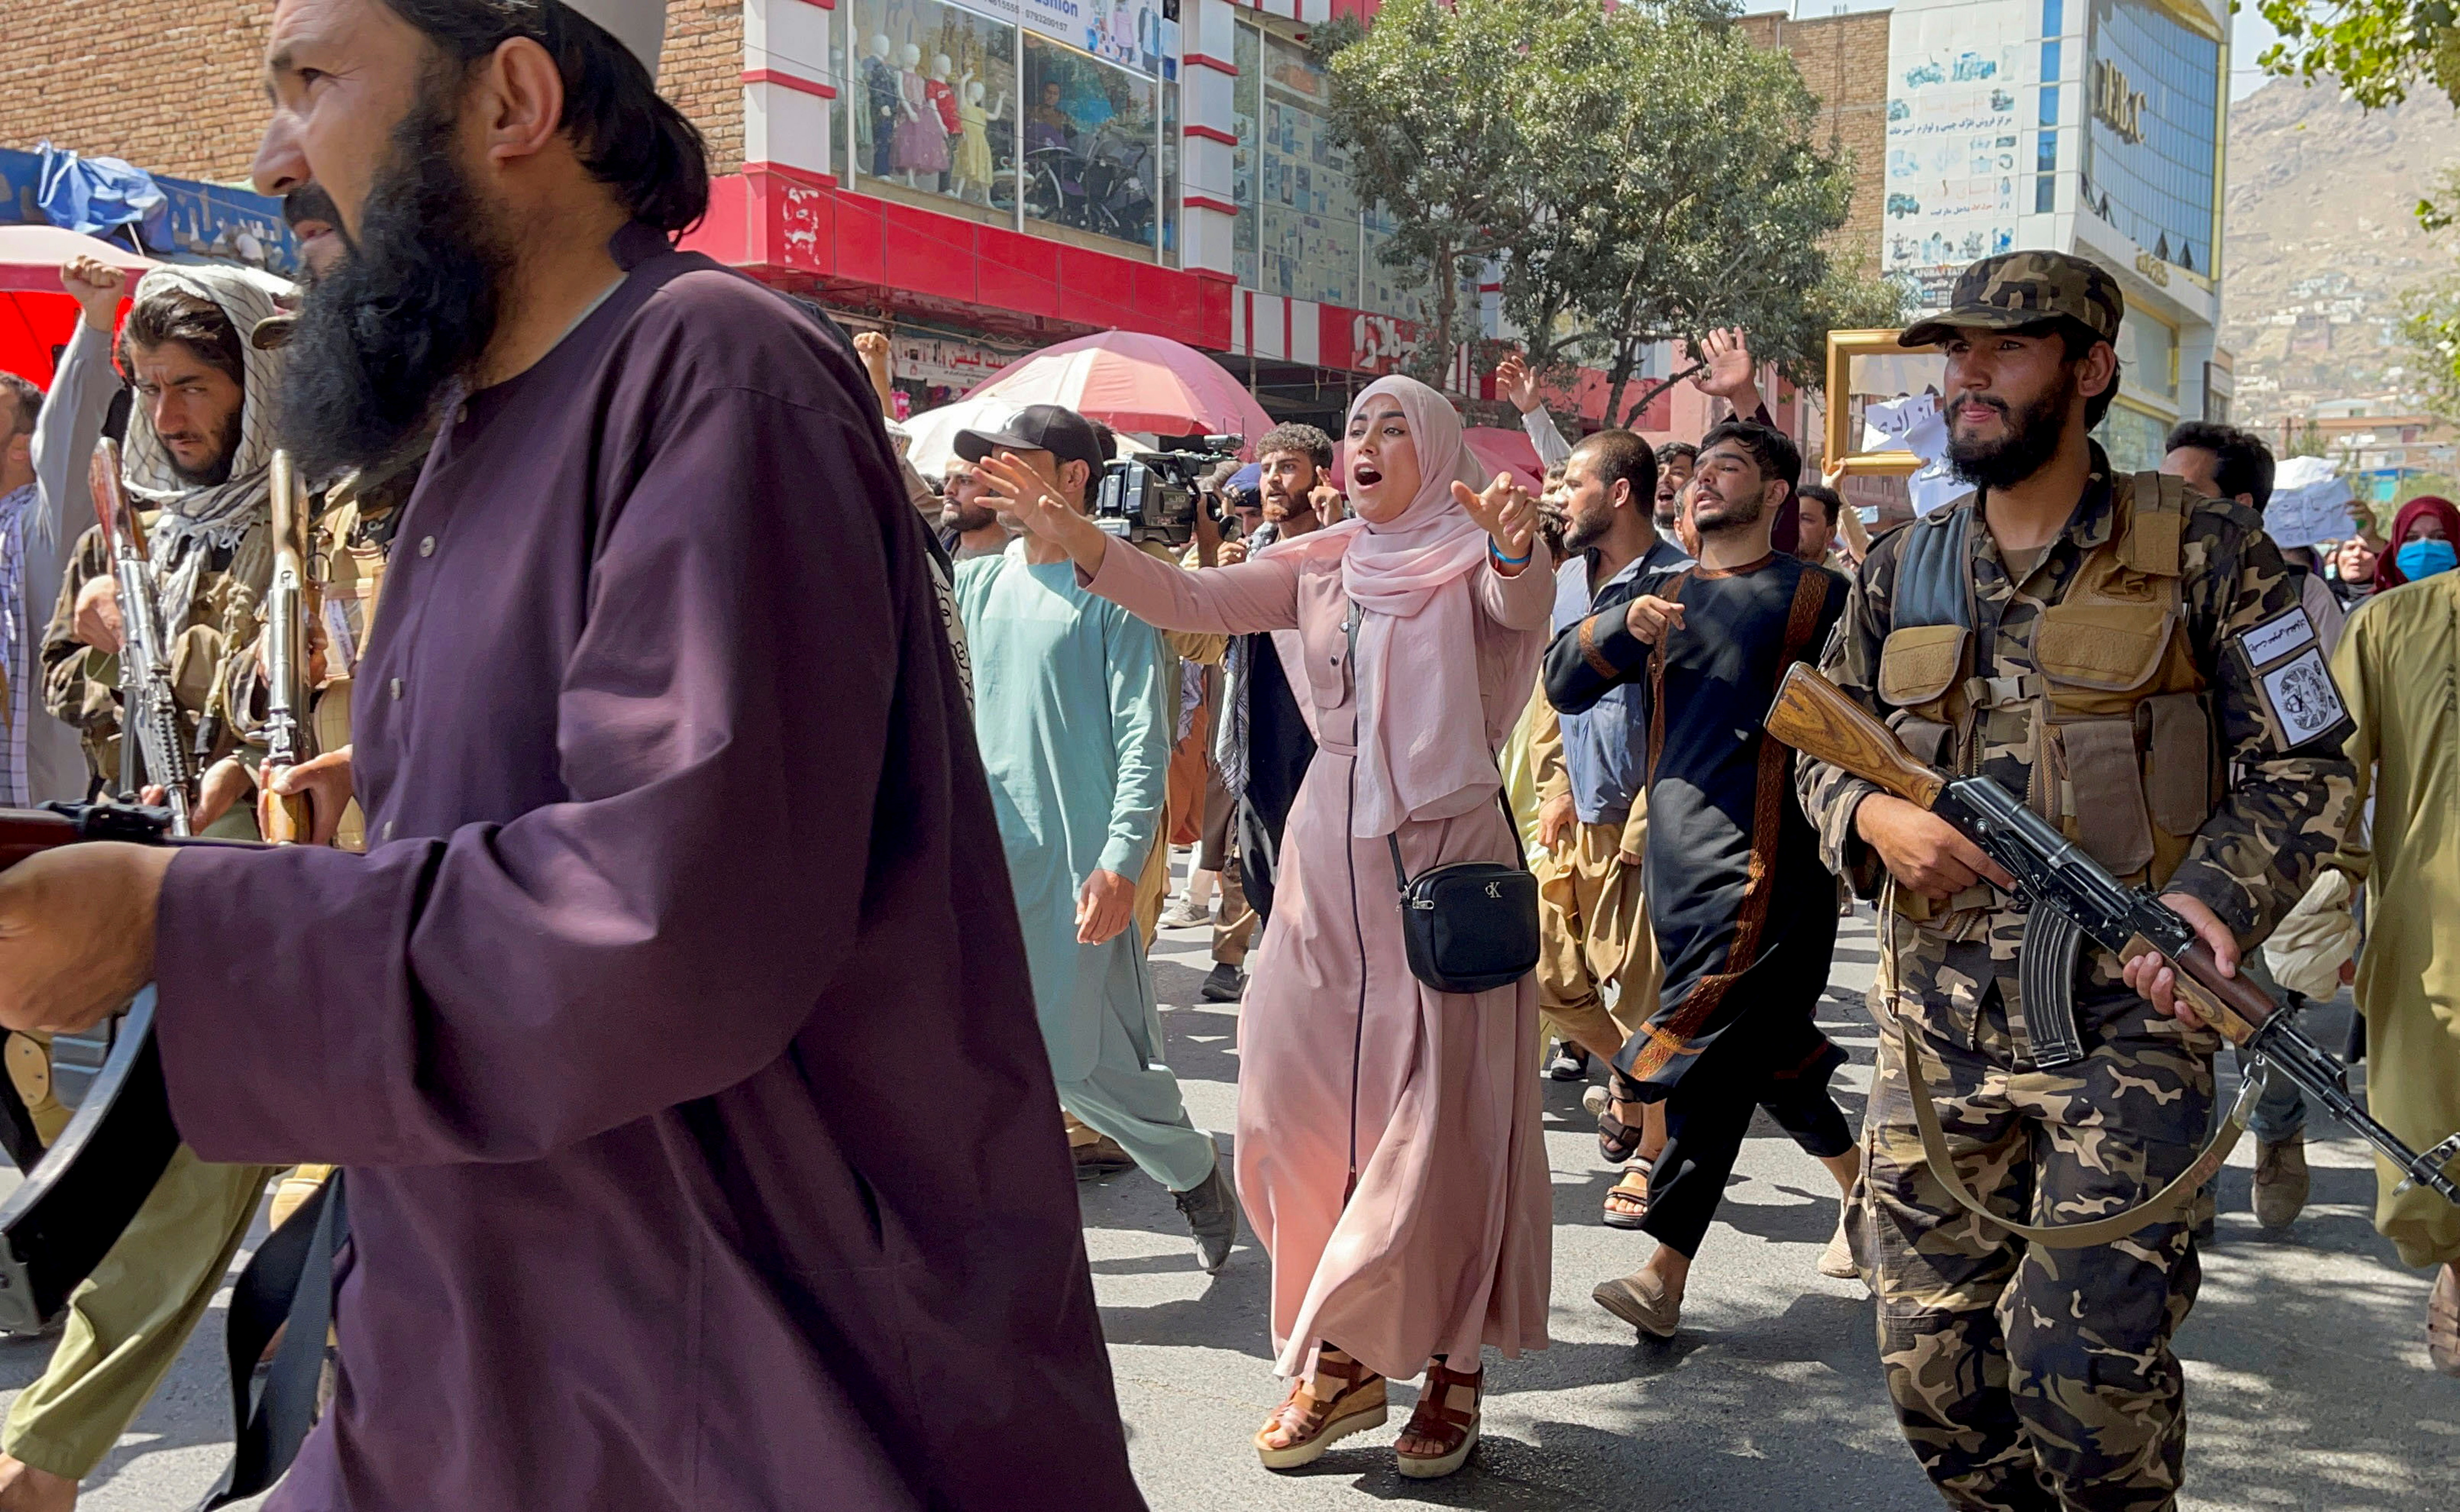 Afghan demonstrators shout slogans during an anti-Pakistan protest, near the Pakistan embassy in Kabul, Afghanistan, September 7, 2021. REUTERS/Stringer